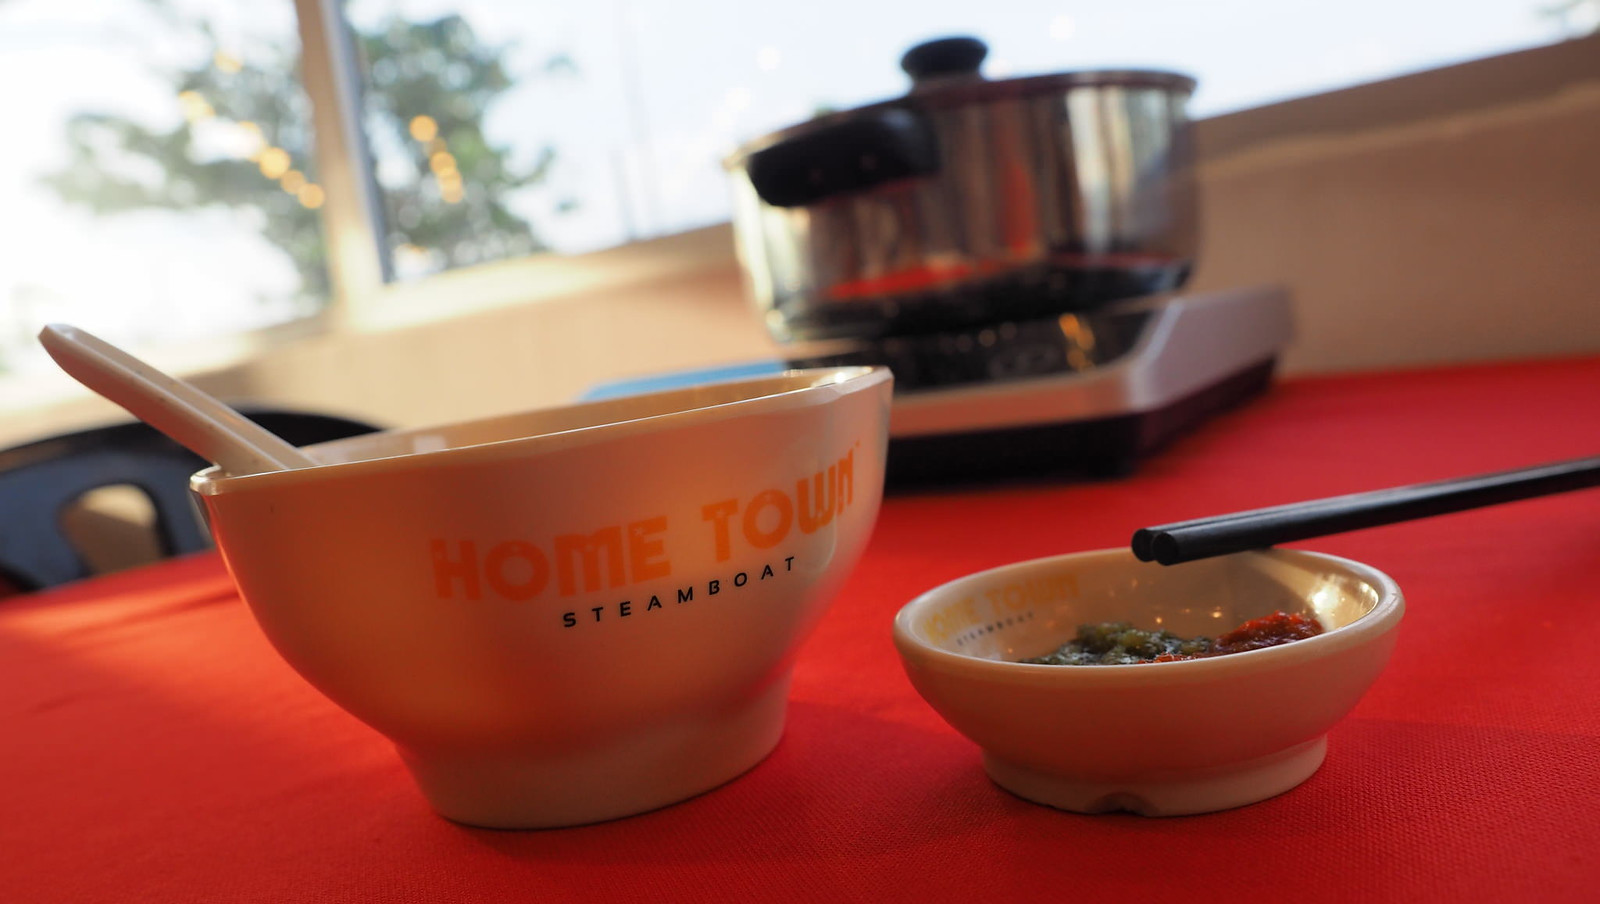 The bowl, the chili sauce and the pot for steamboat